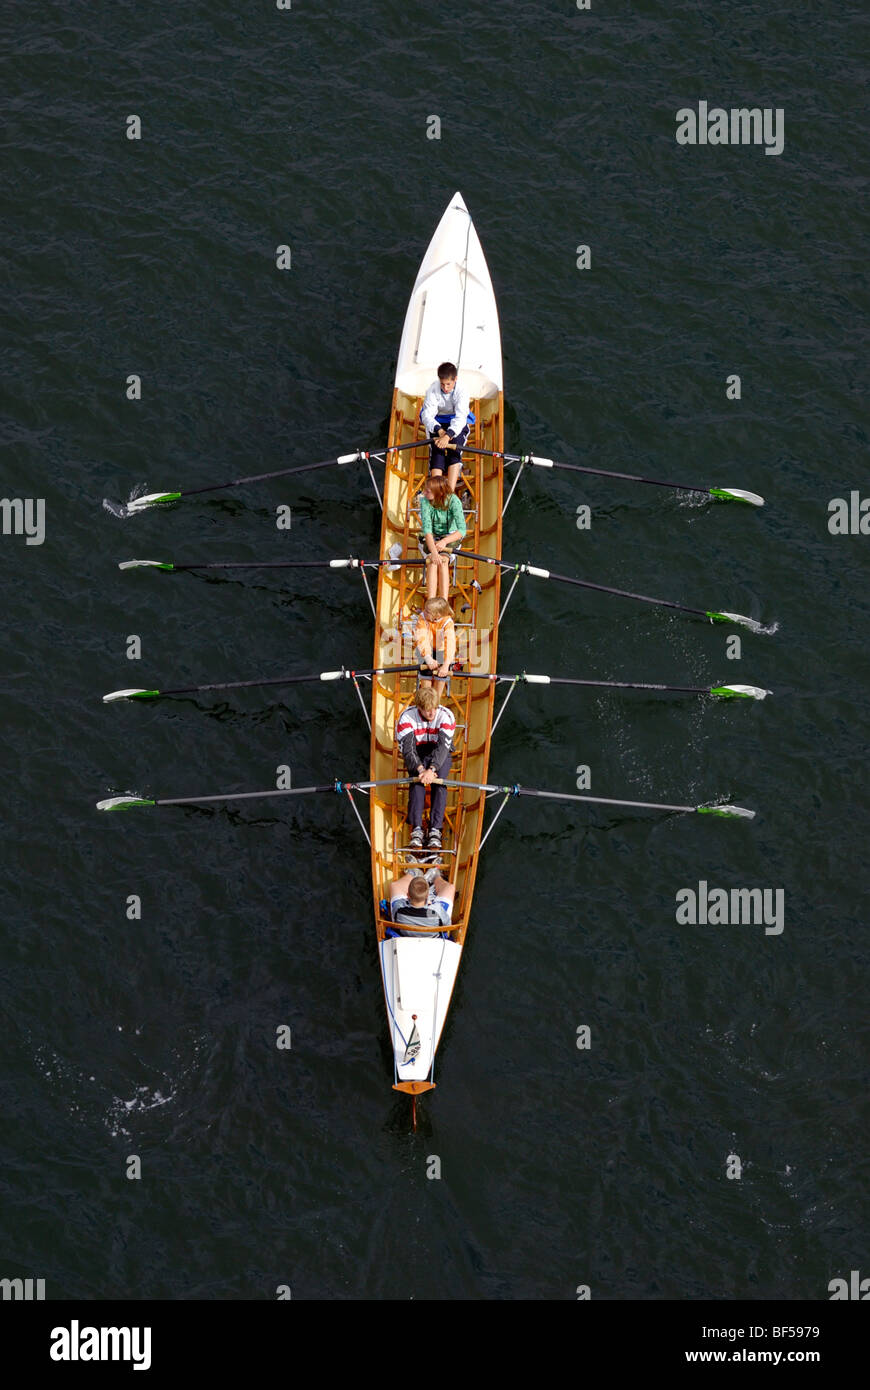 Water sports, double-coxed fours, young rowers in action - Stock Image